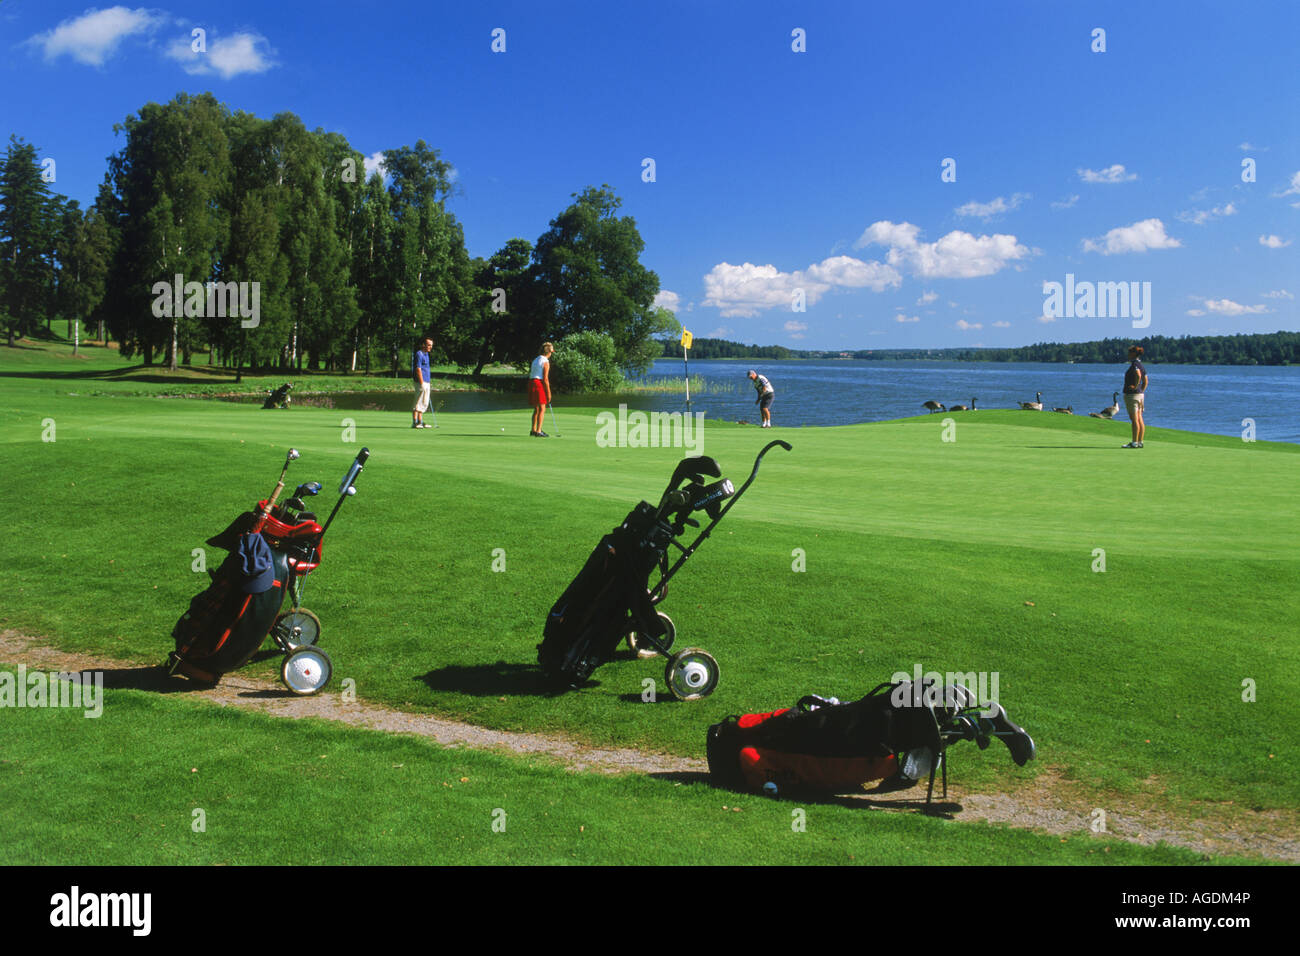 Golf carts and players on Taby Golf Course green near Stockholm in Sweden - Stock Image